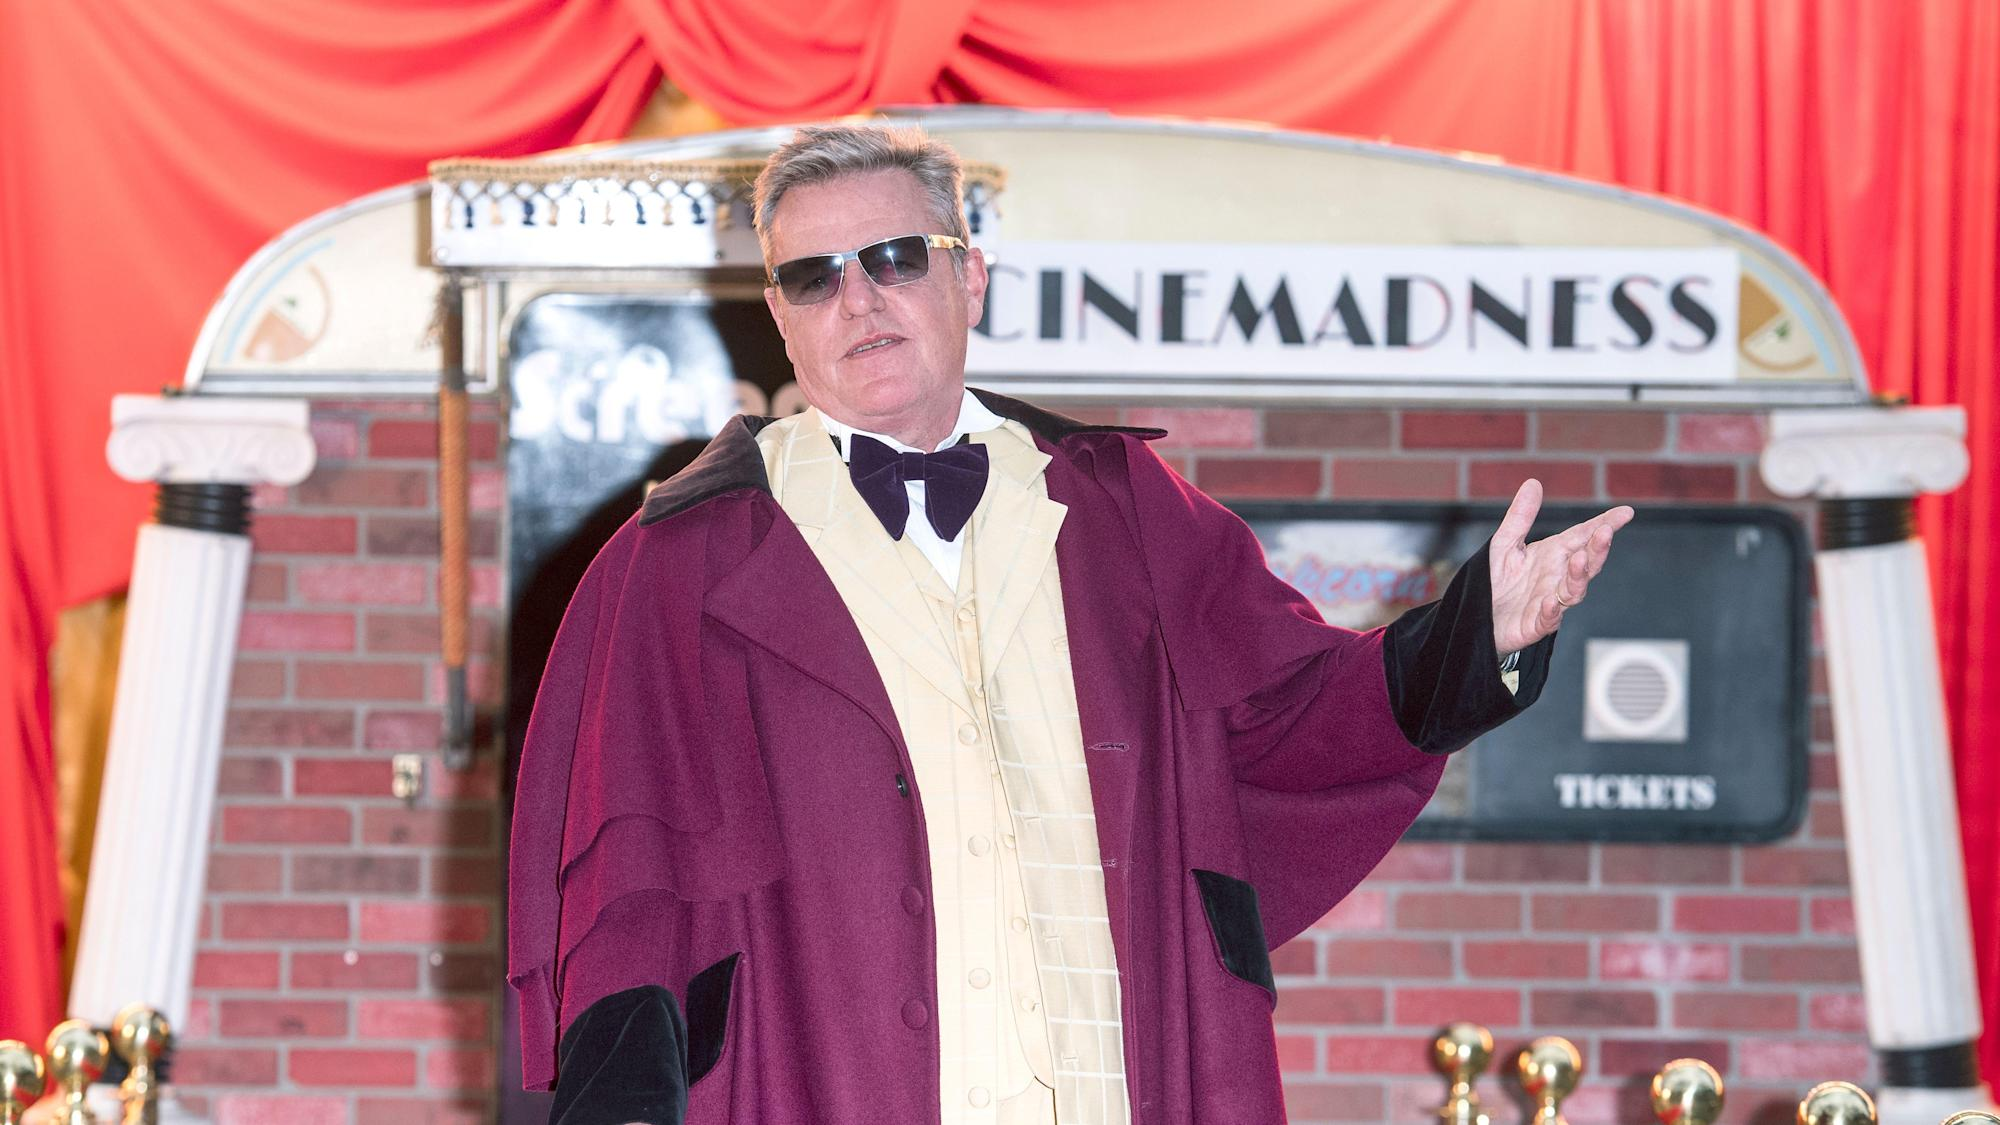 Madness frontman Suggs laments decline of London at documentary premiere